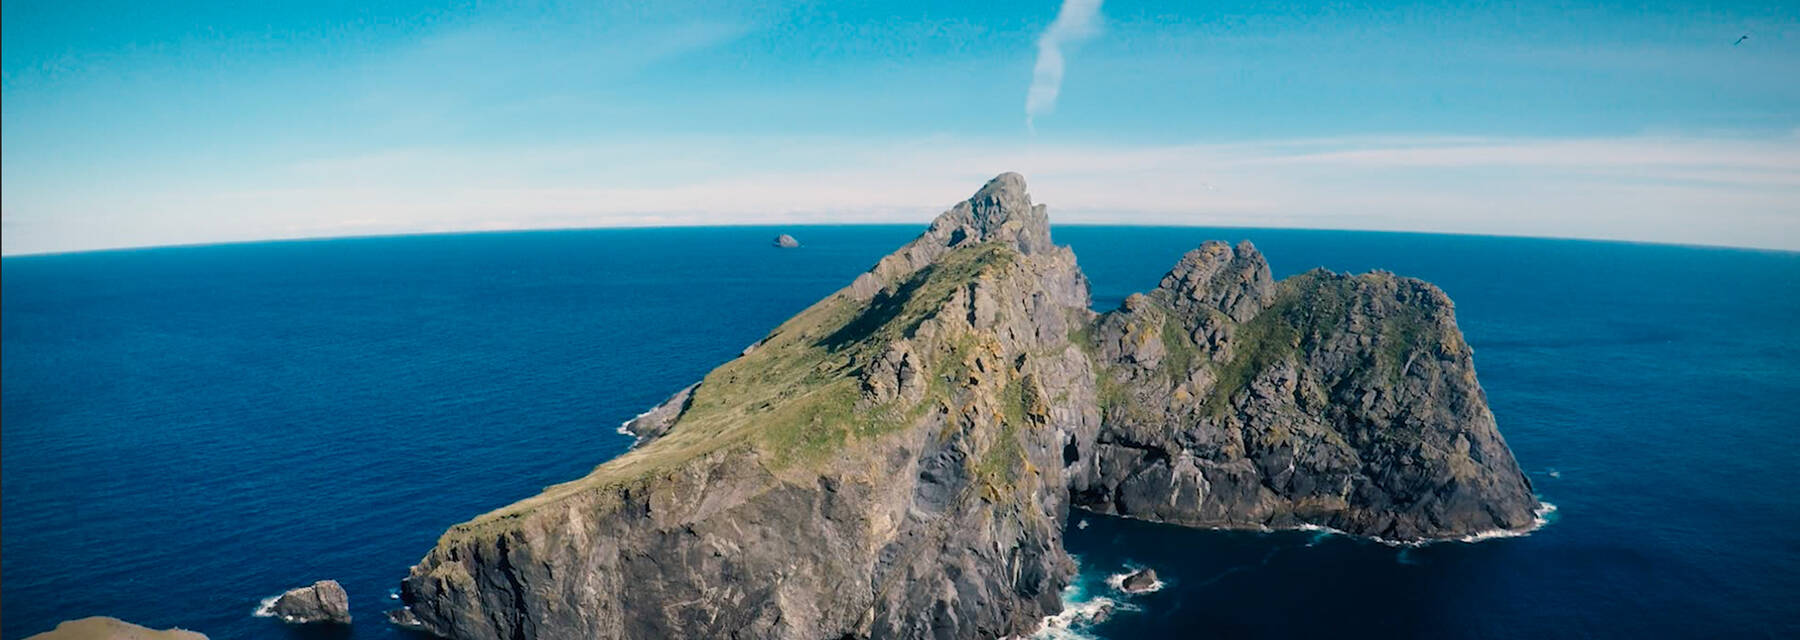 The island of Hirta, in the St Kilda archipelago